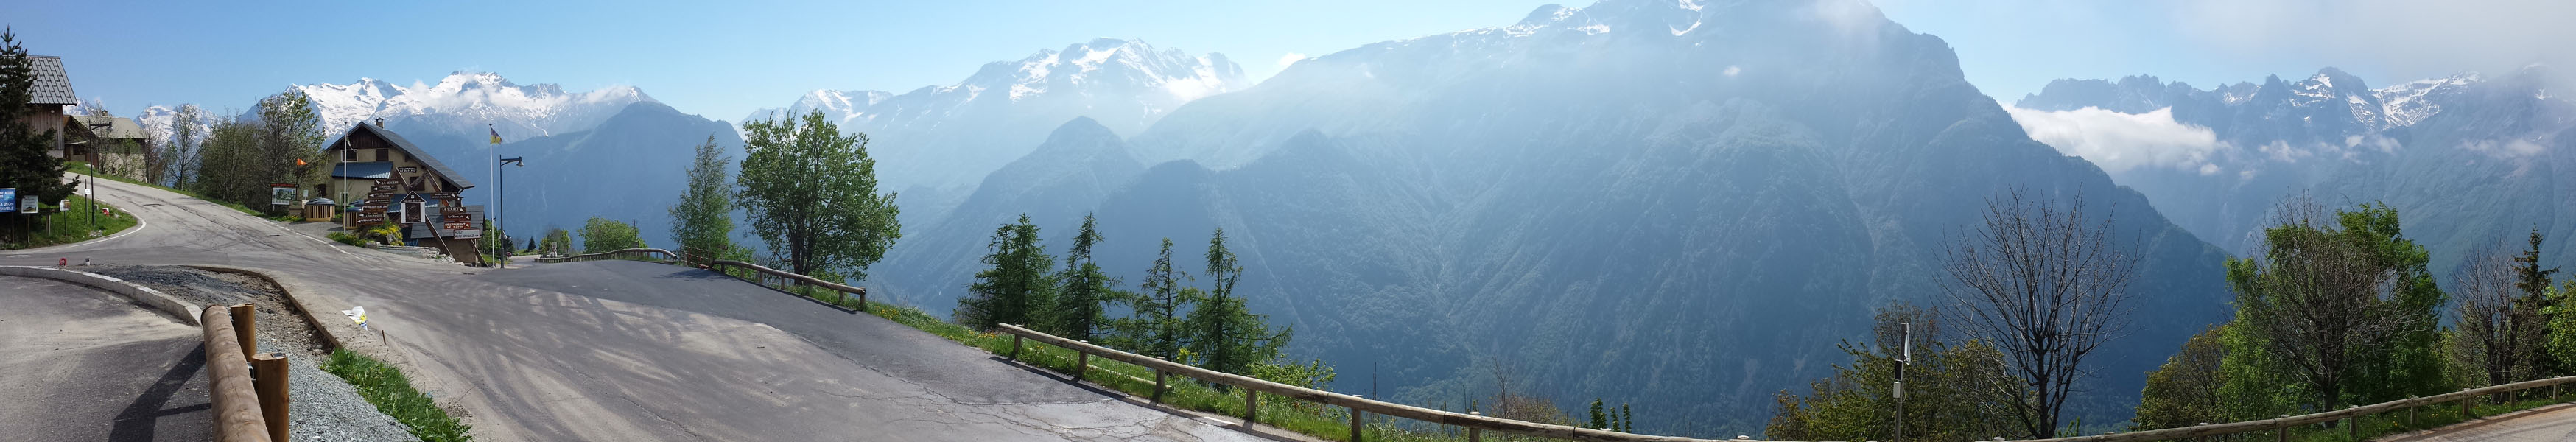 Panoramic view from town of Huez, French Alps